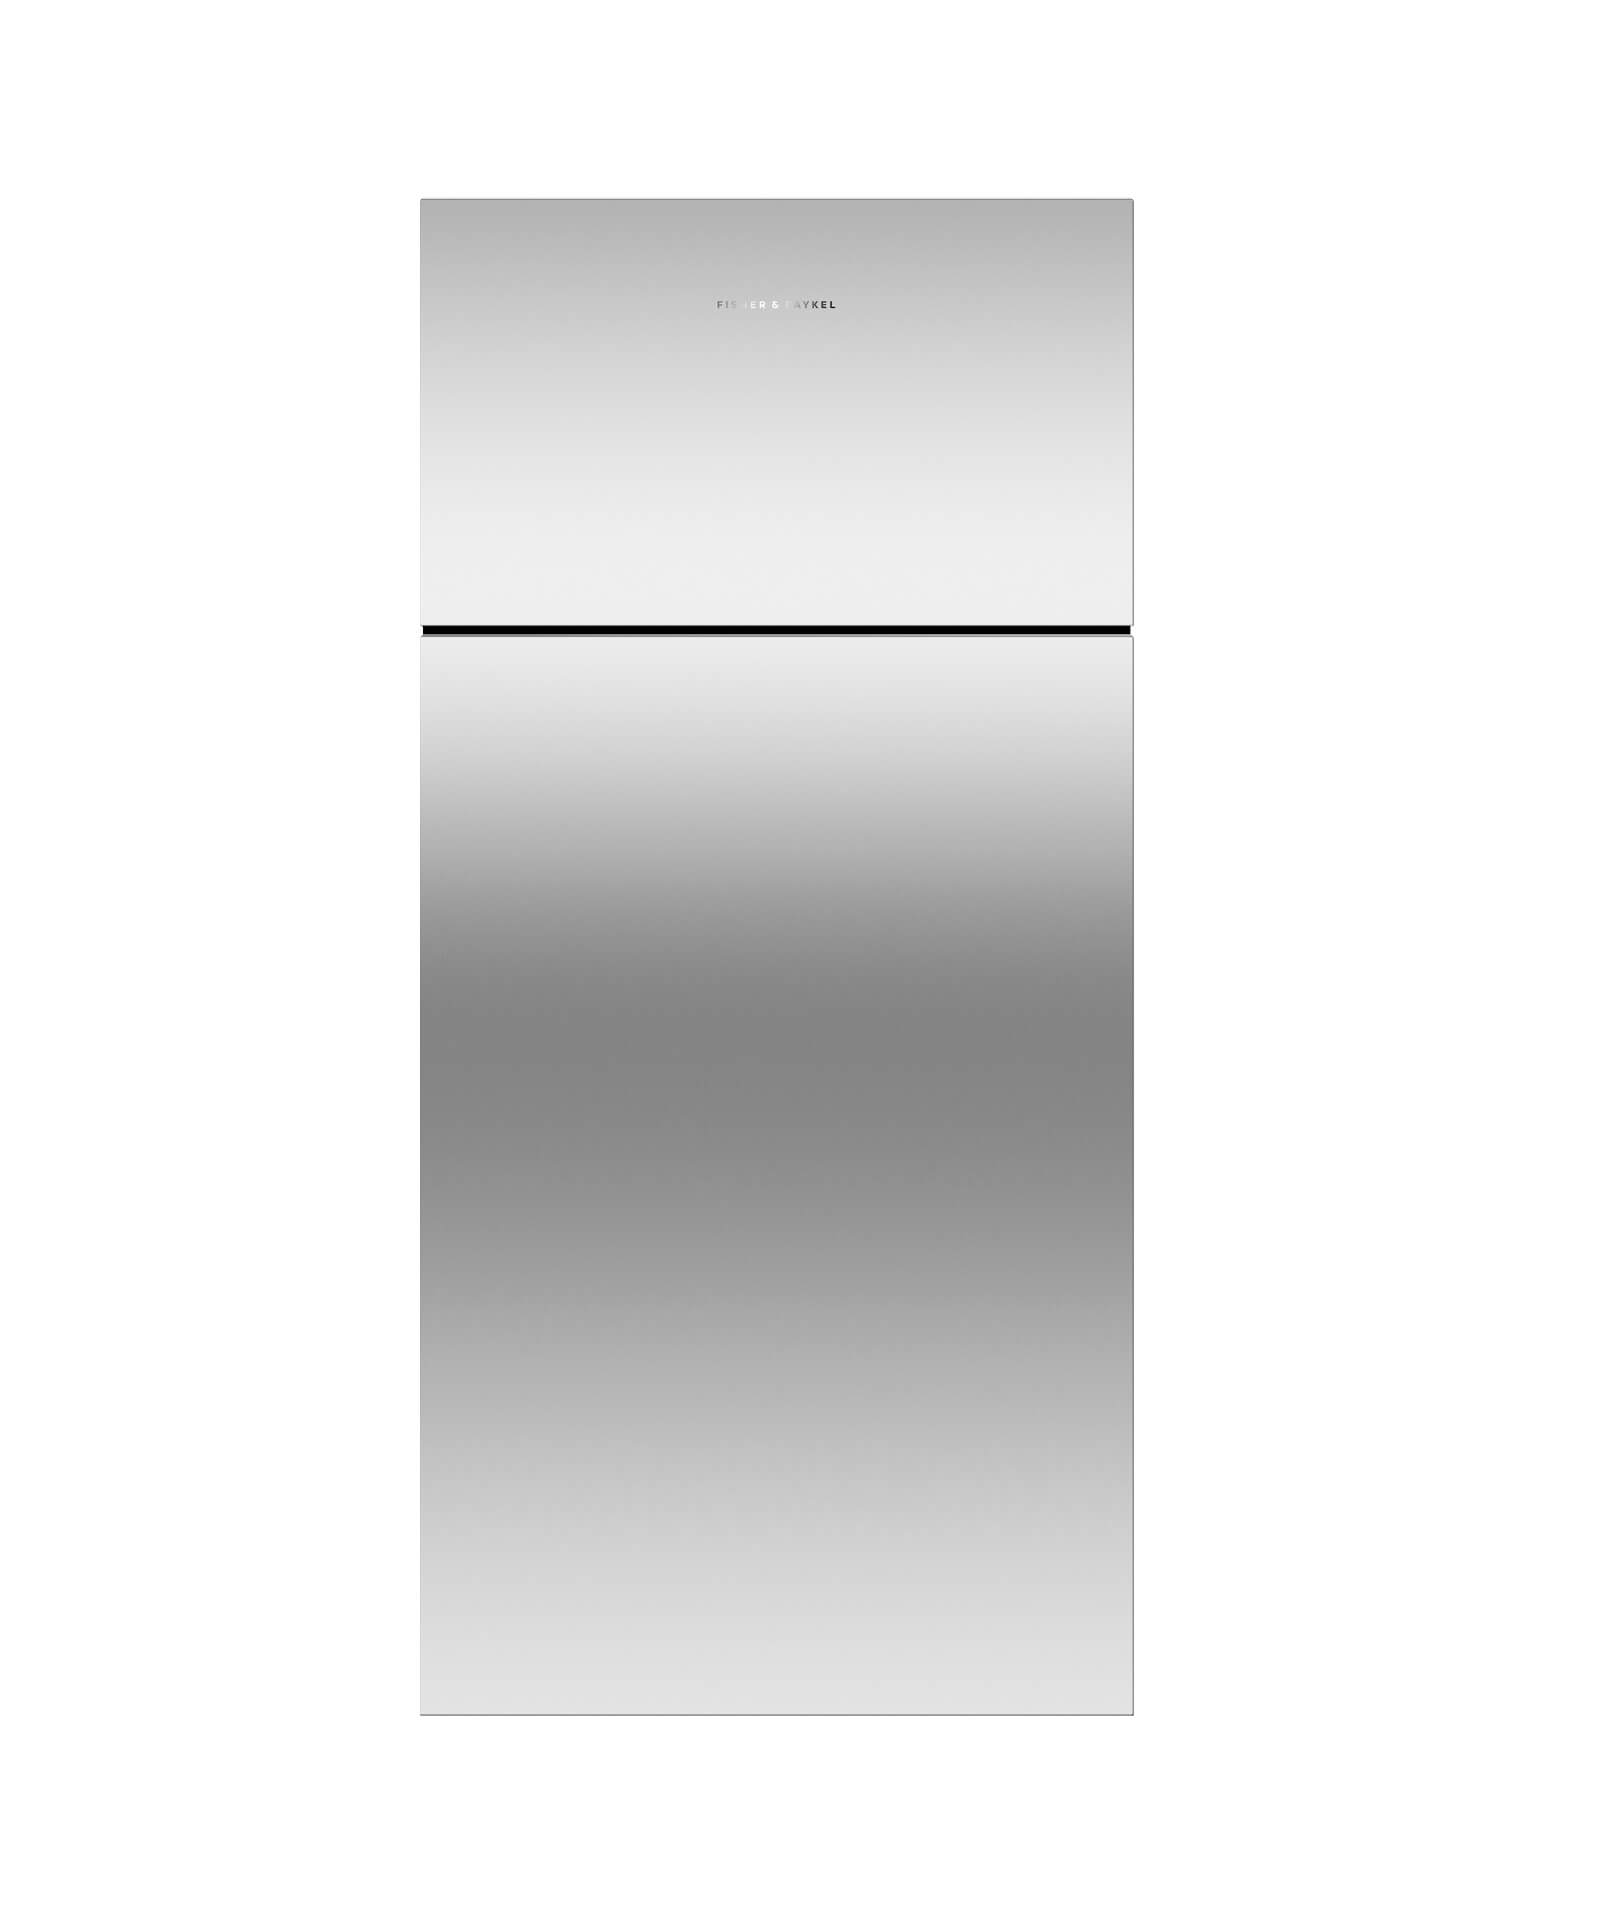 RF521TRPX6 - ActiveSmart™ Fridge - 790mm Top Freezer 487L - 25229